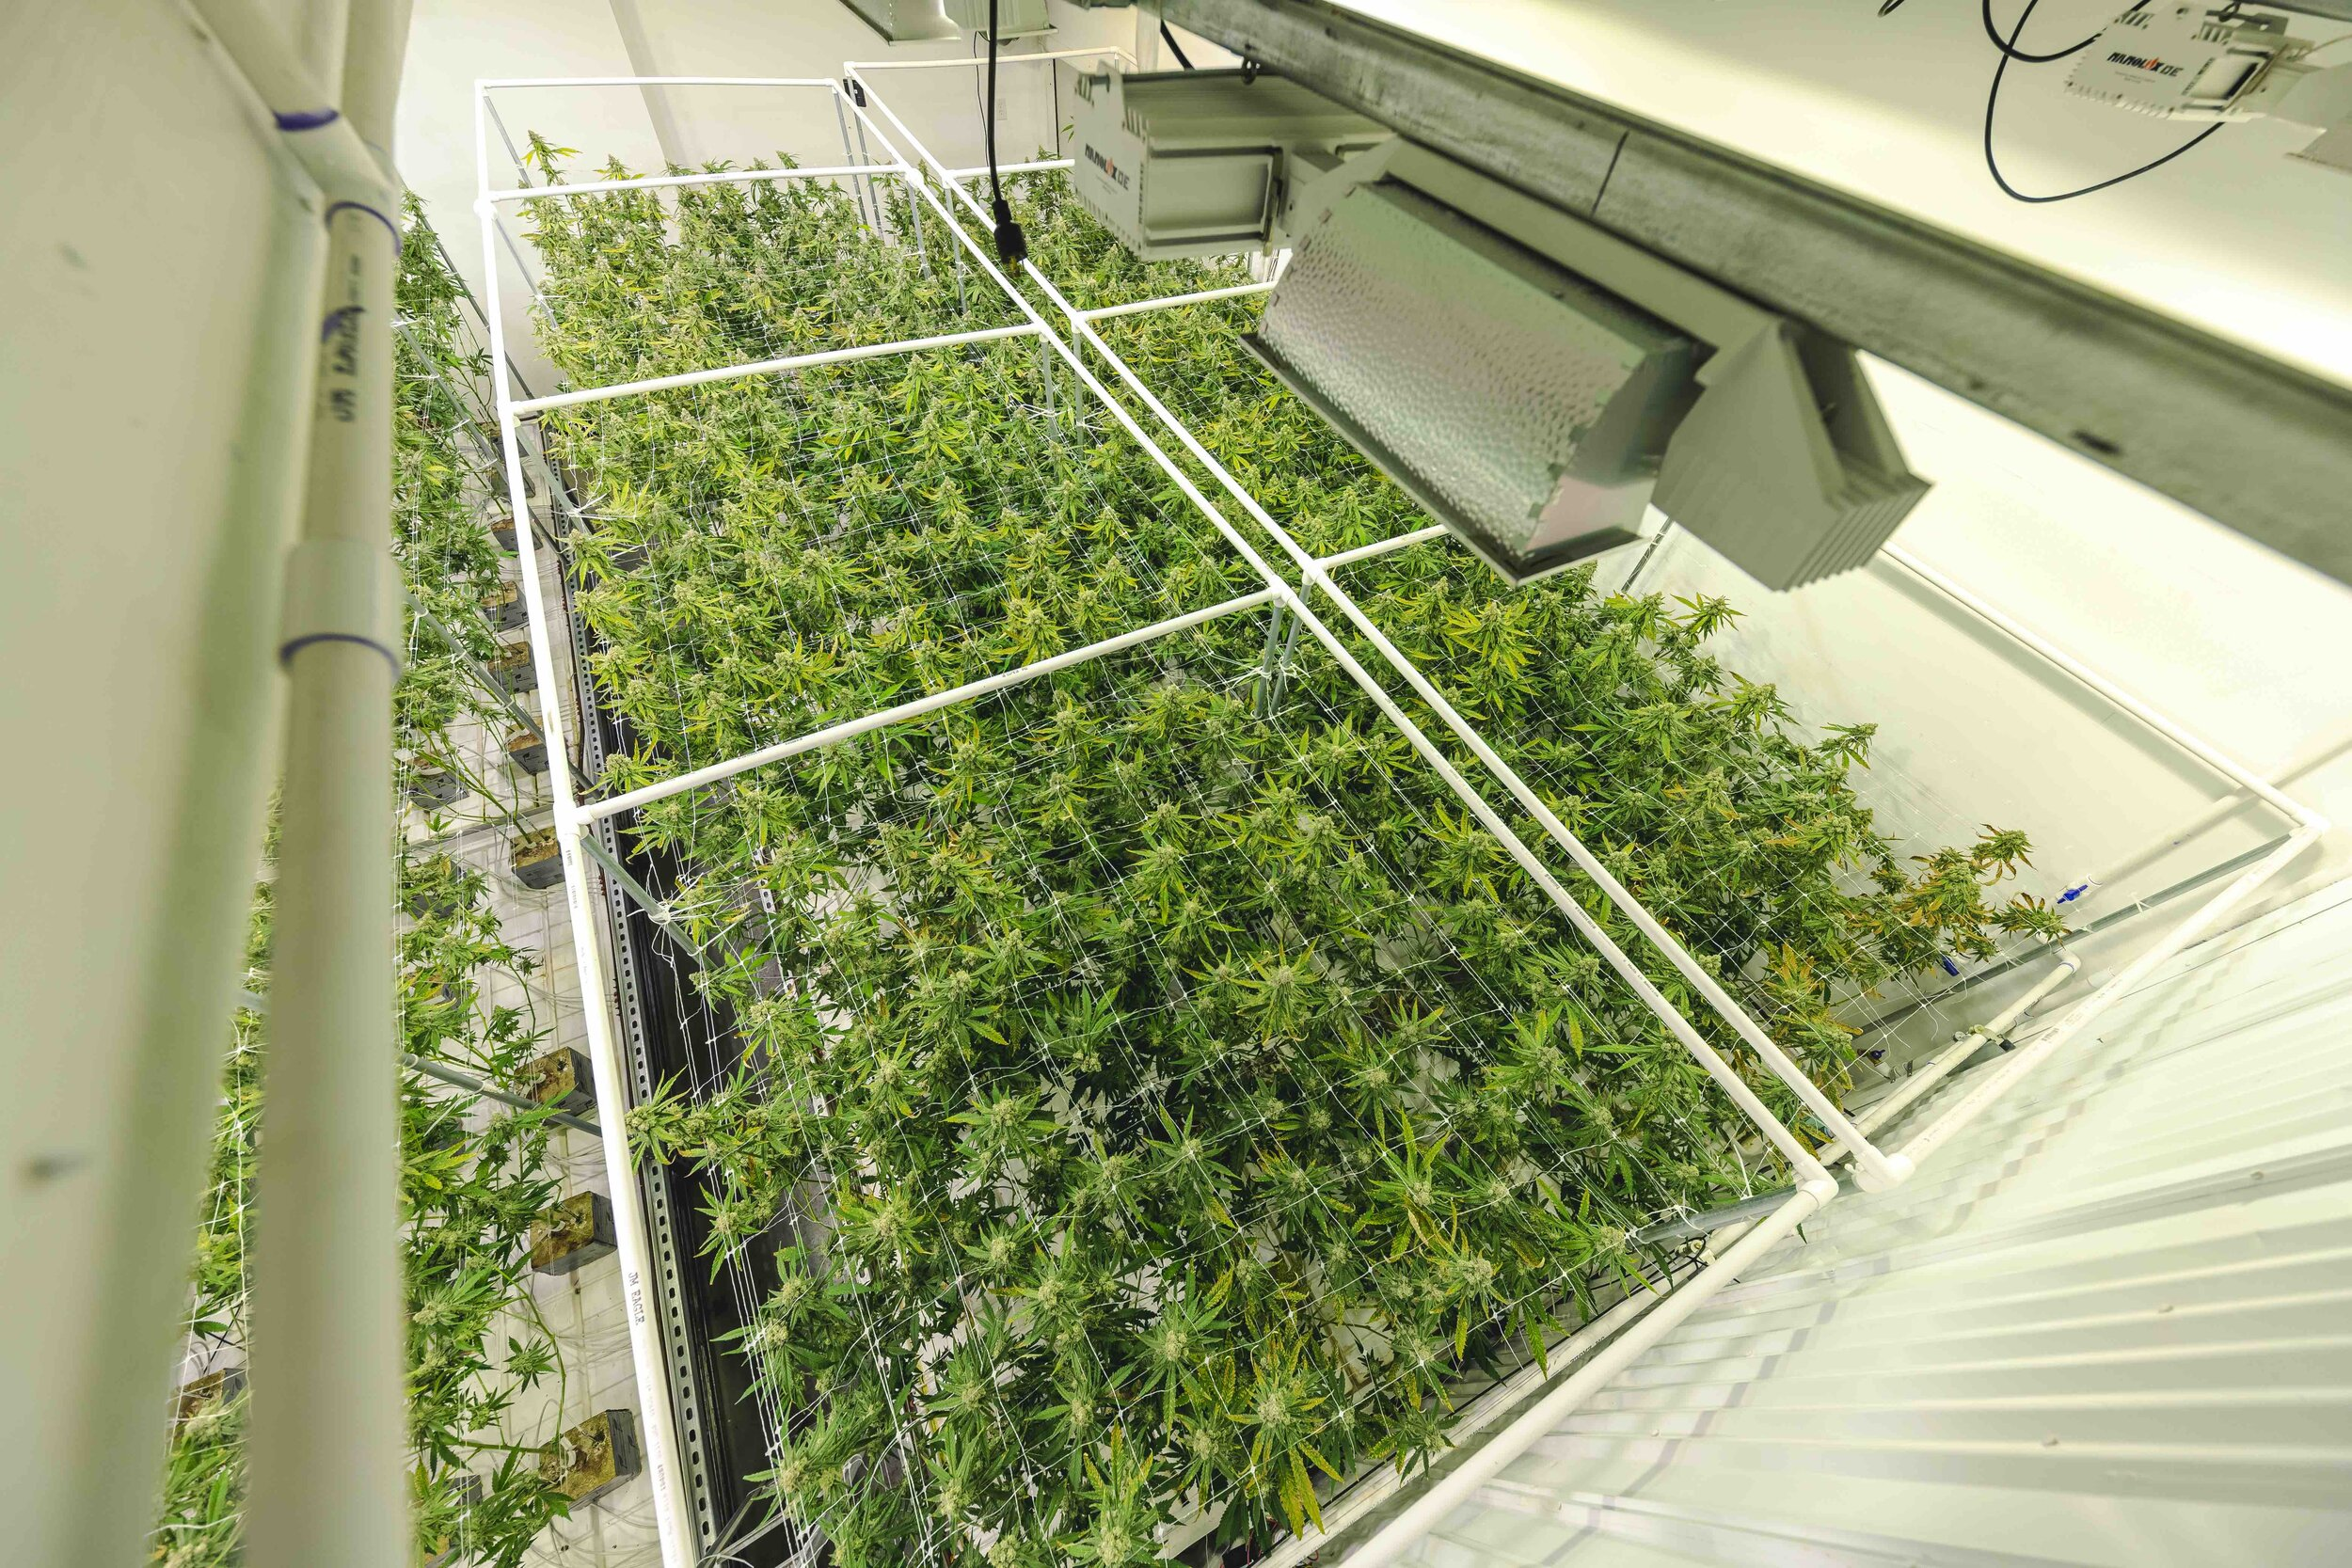 Abstract_Top_Angle_on_Weed_Plant_Canopy_Growing_at_Indoor_Farm.jpeg